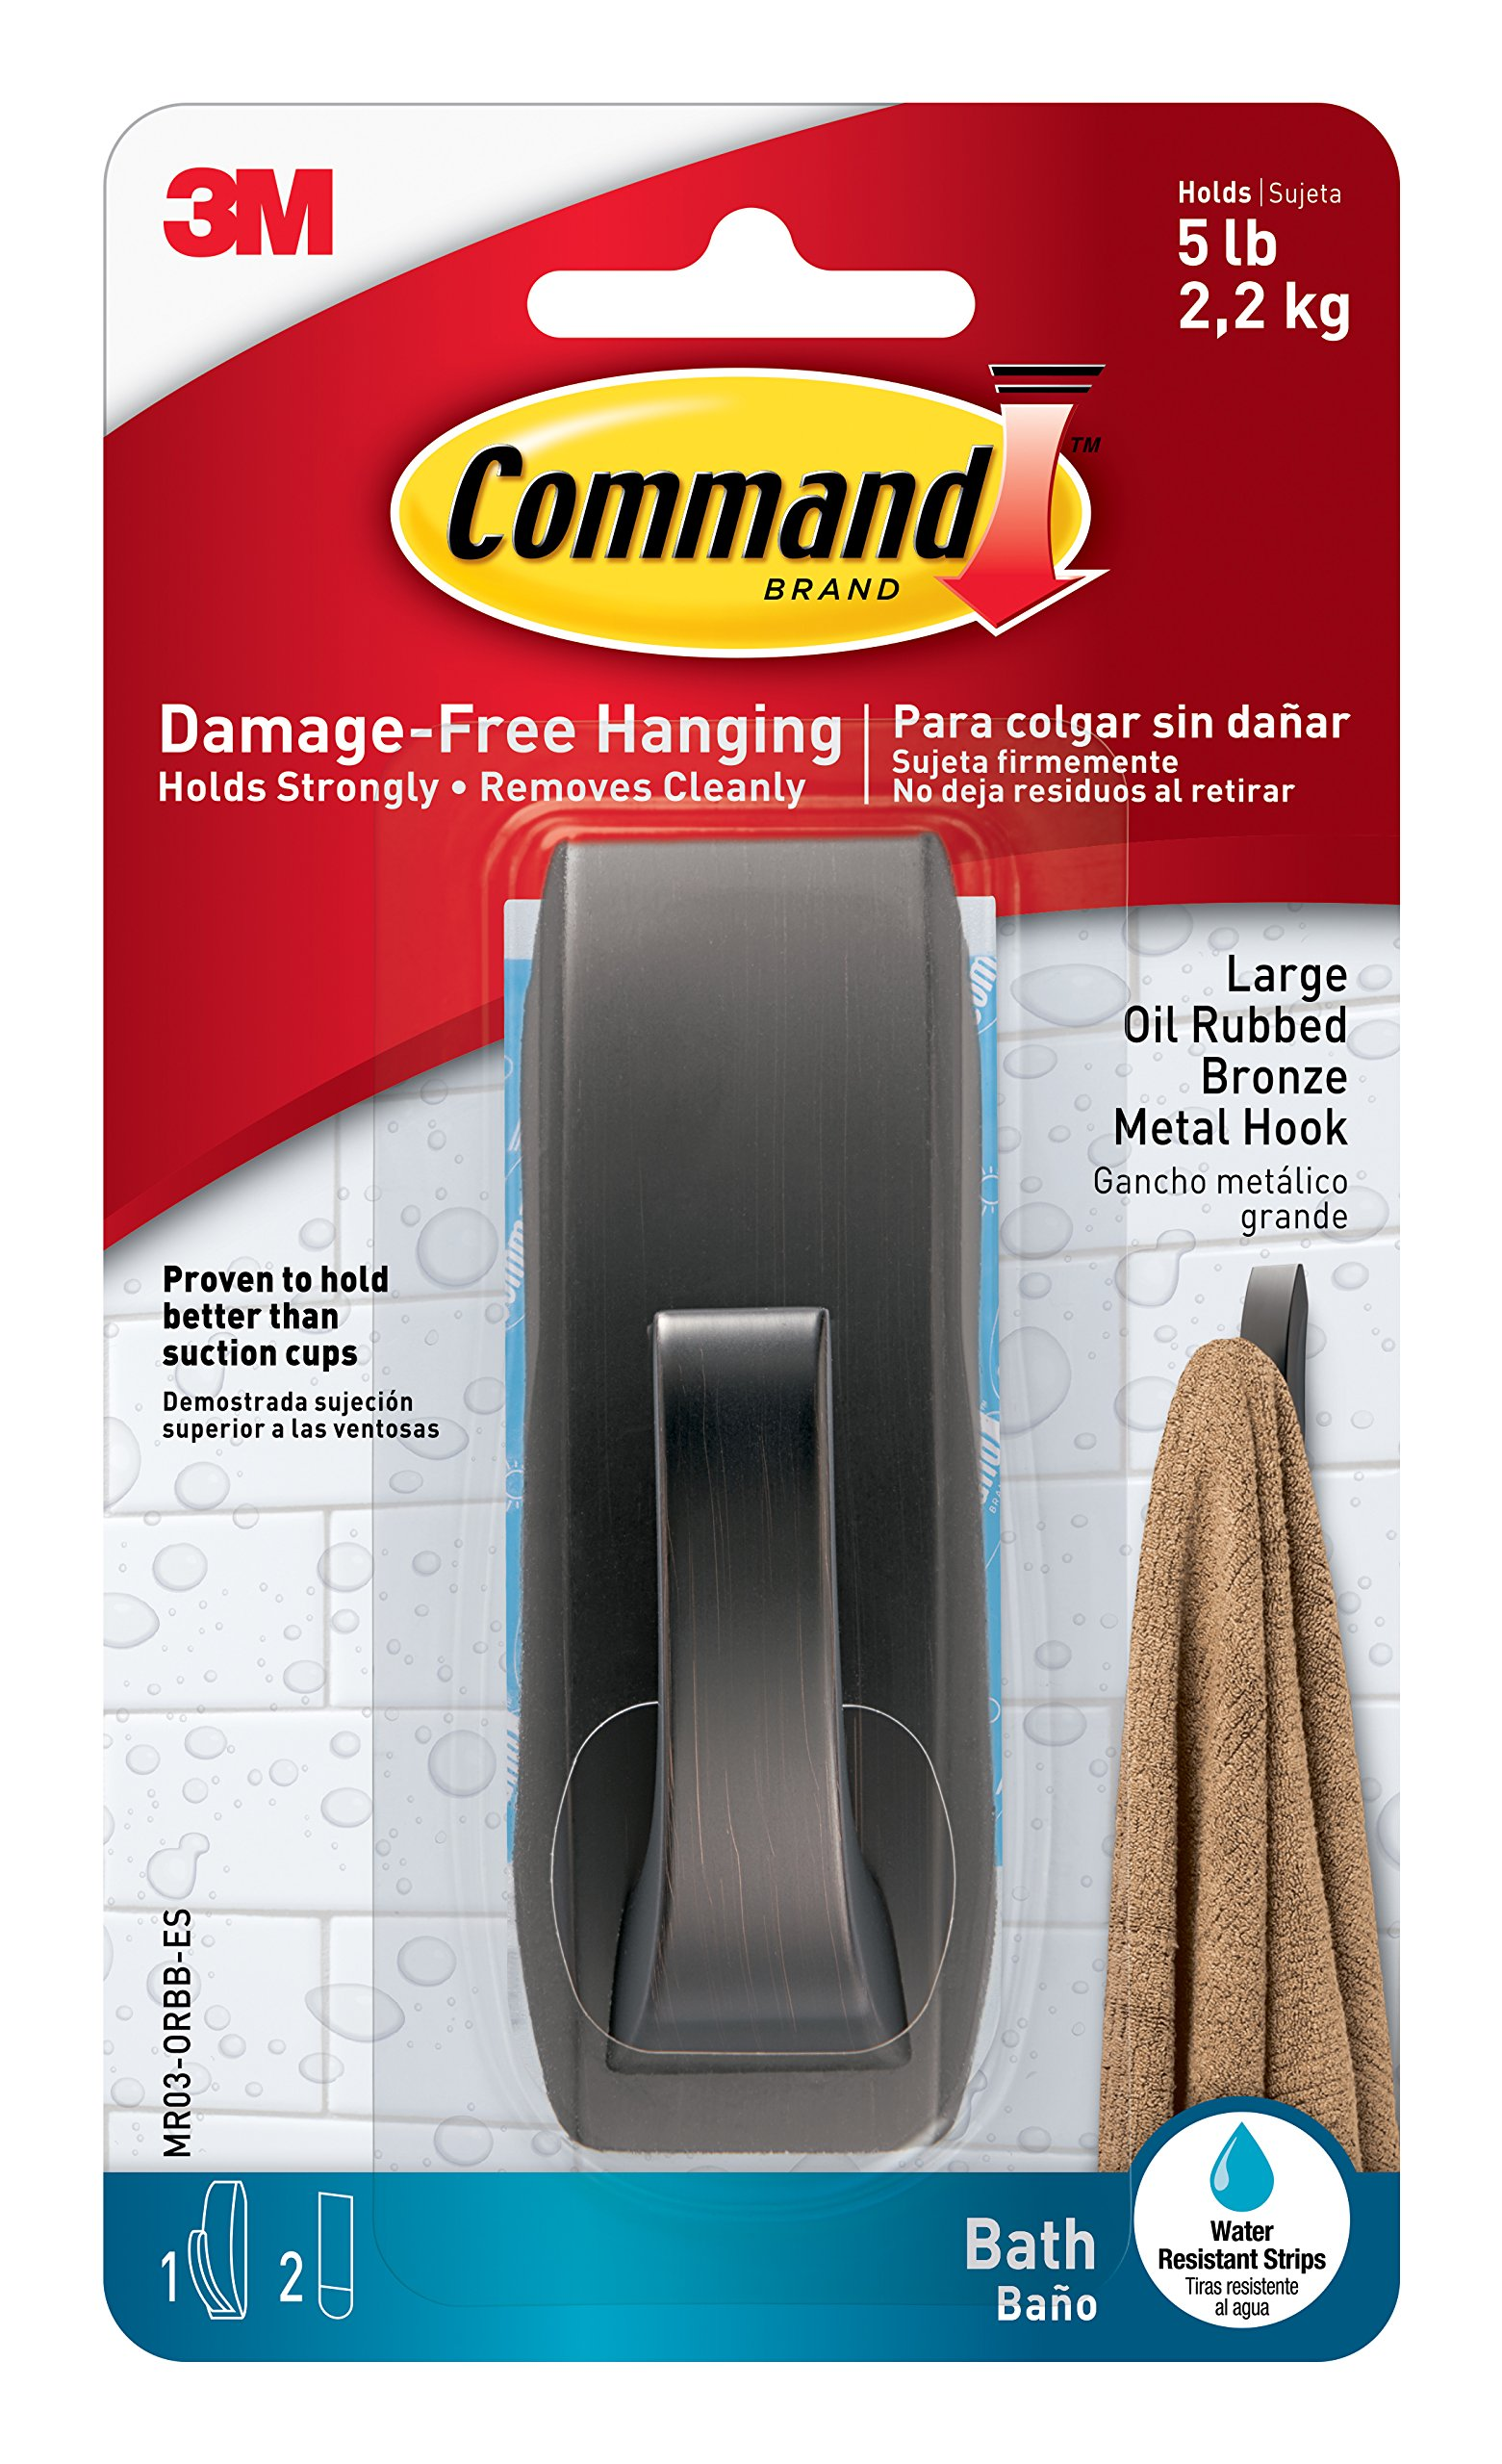 Command Modern Reflections Metal Bath Hook, Large, Oil Rubbed Bronze, 1-Hook with Water-Resistant Strips (MR03-ORBB-ES) by Command